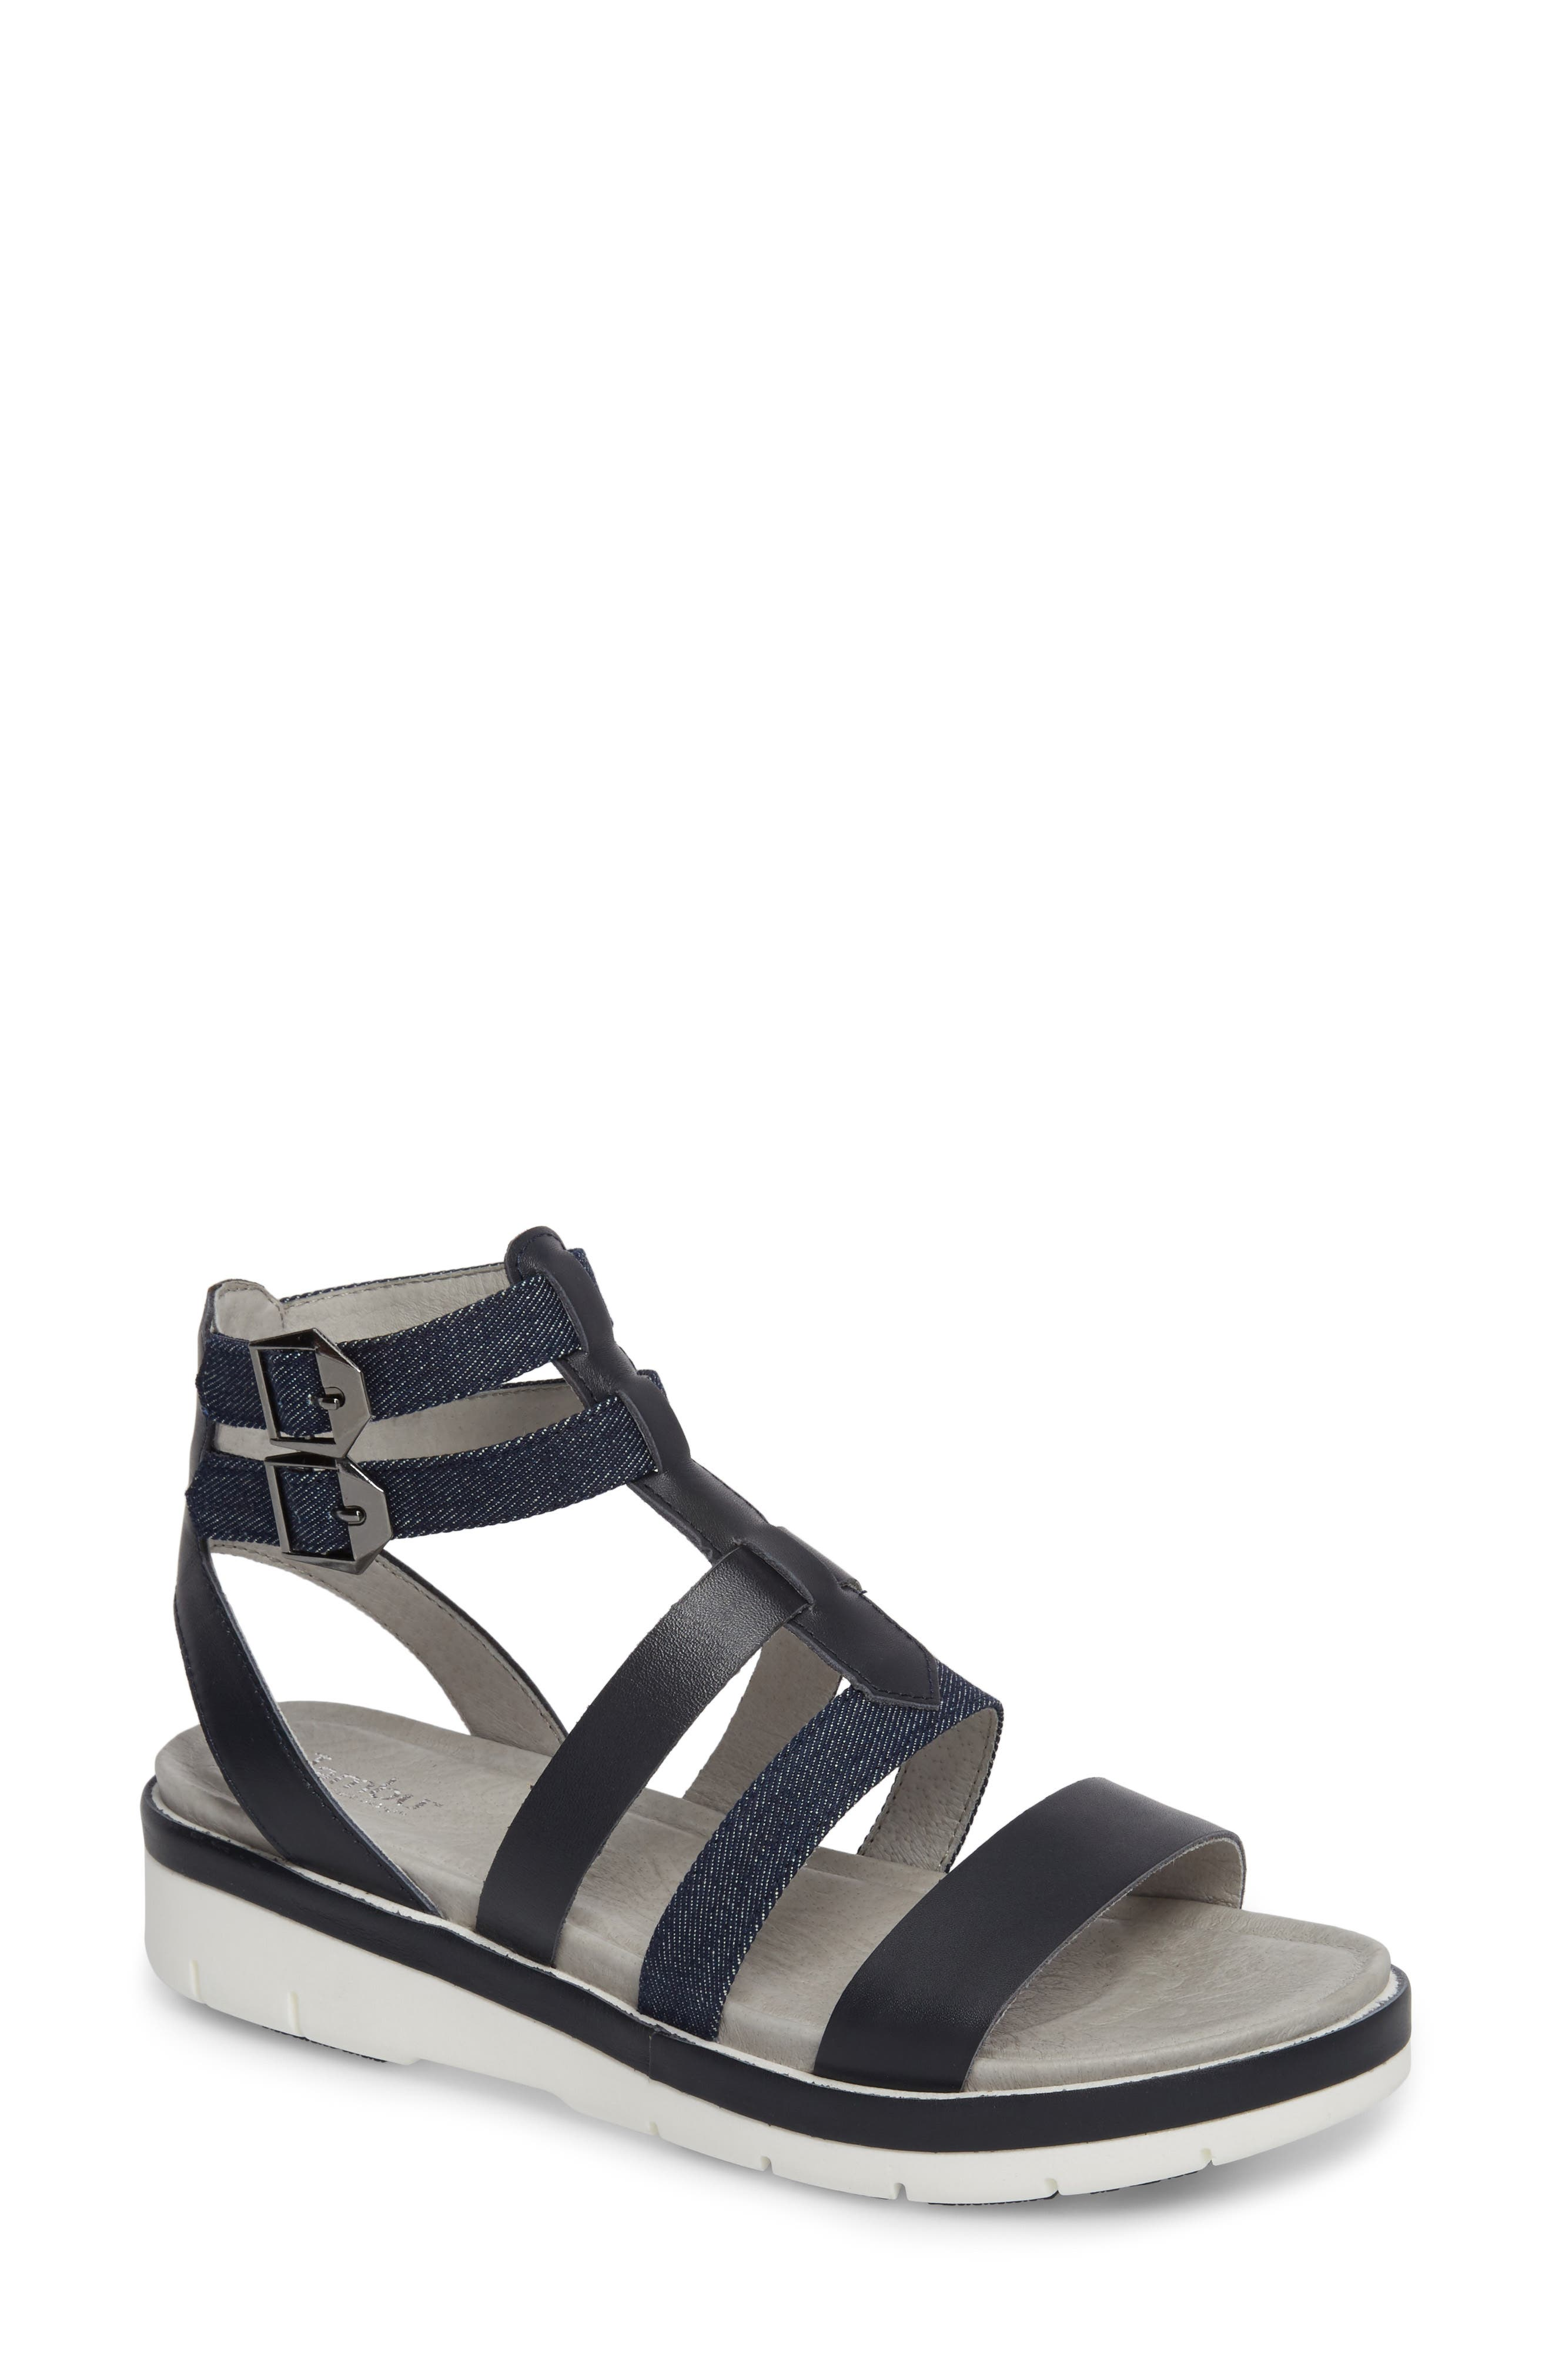 Piper Sandal,                         Main,                         color, NAVY LEATHER